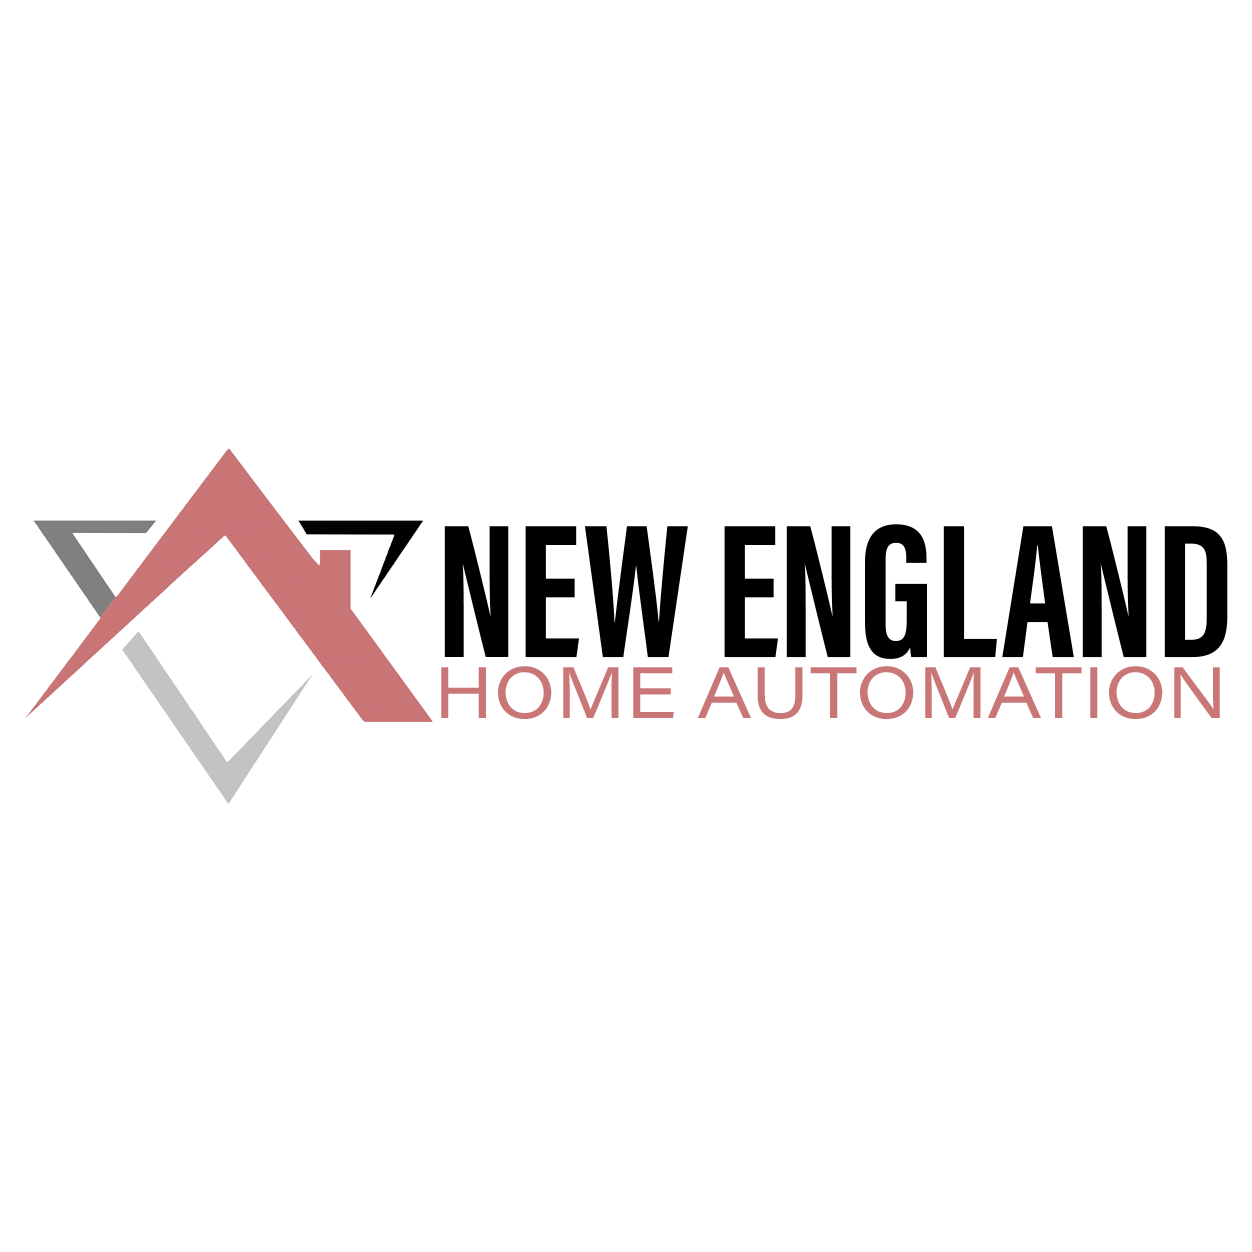 New England Home Automation - Hyannis, MA 02601 - (508)280-5363 | ShowMeLocal.com